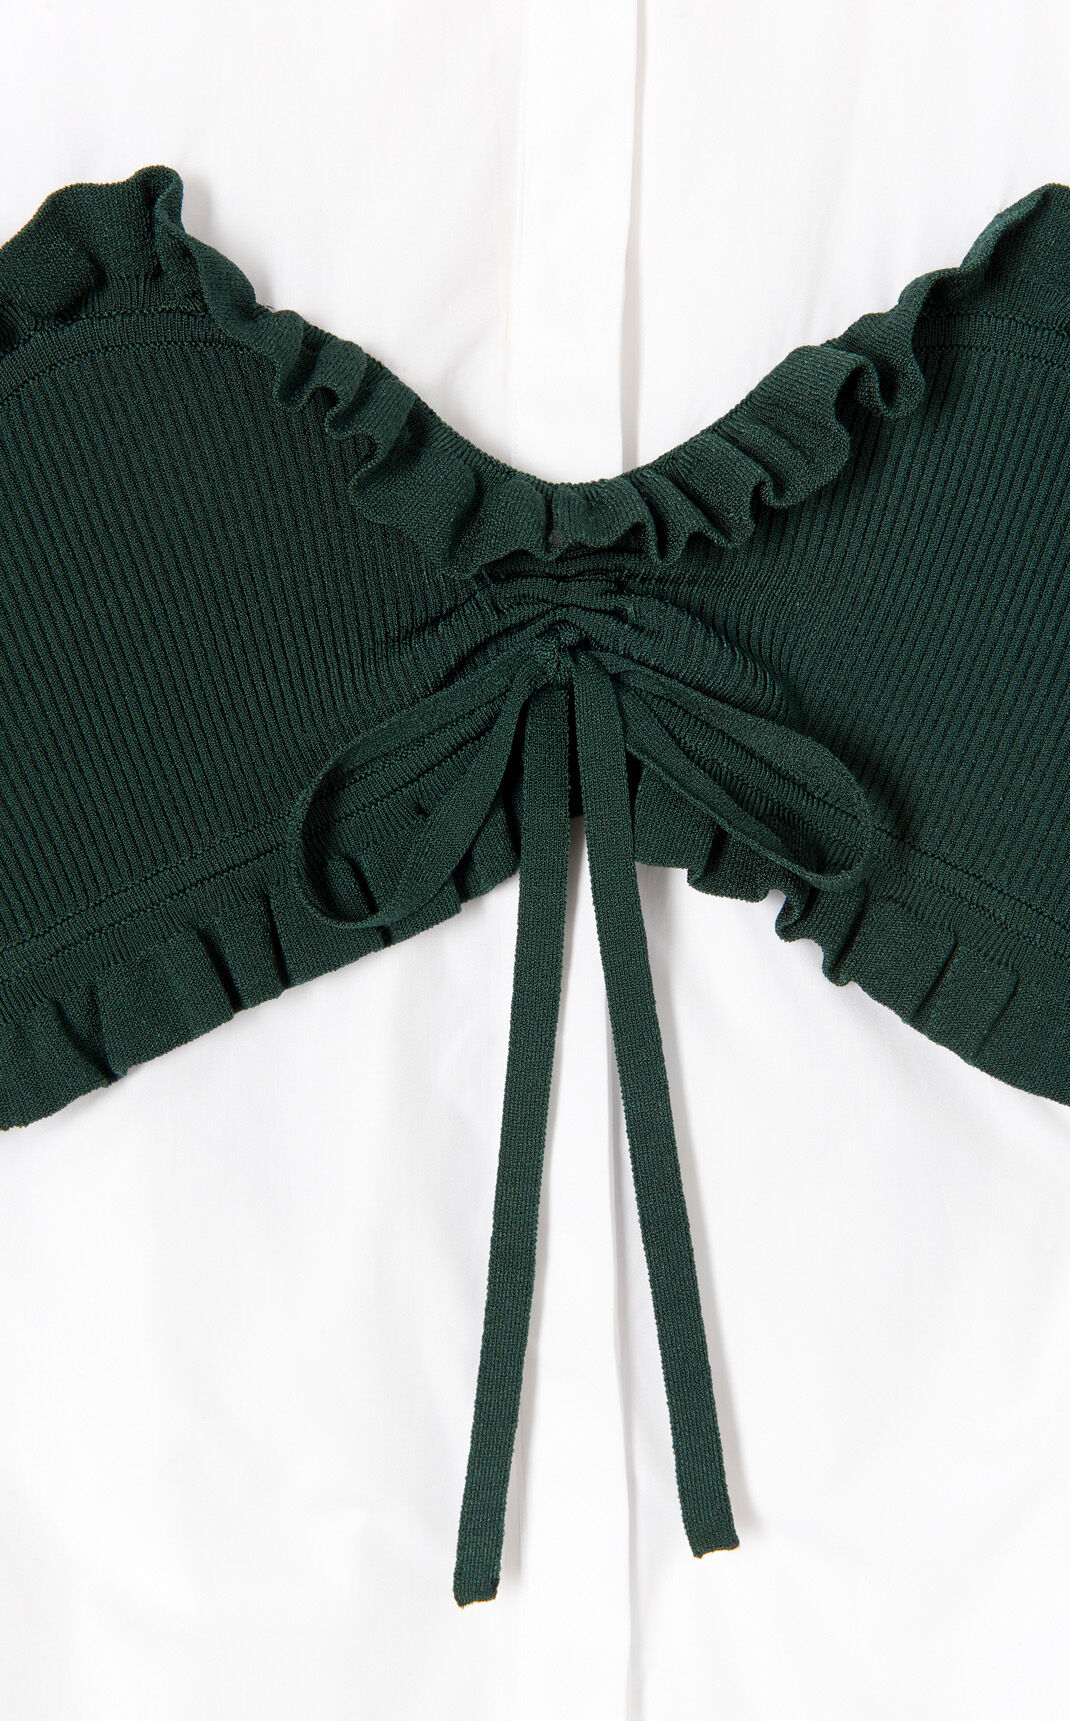 PINE Knit brassiere shirt for women KENZO